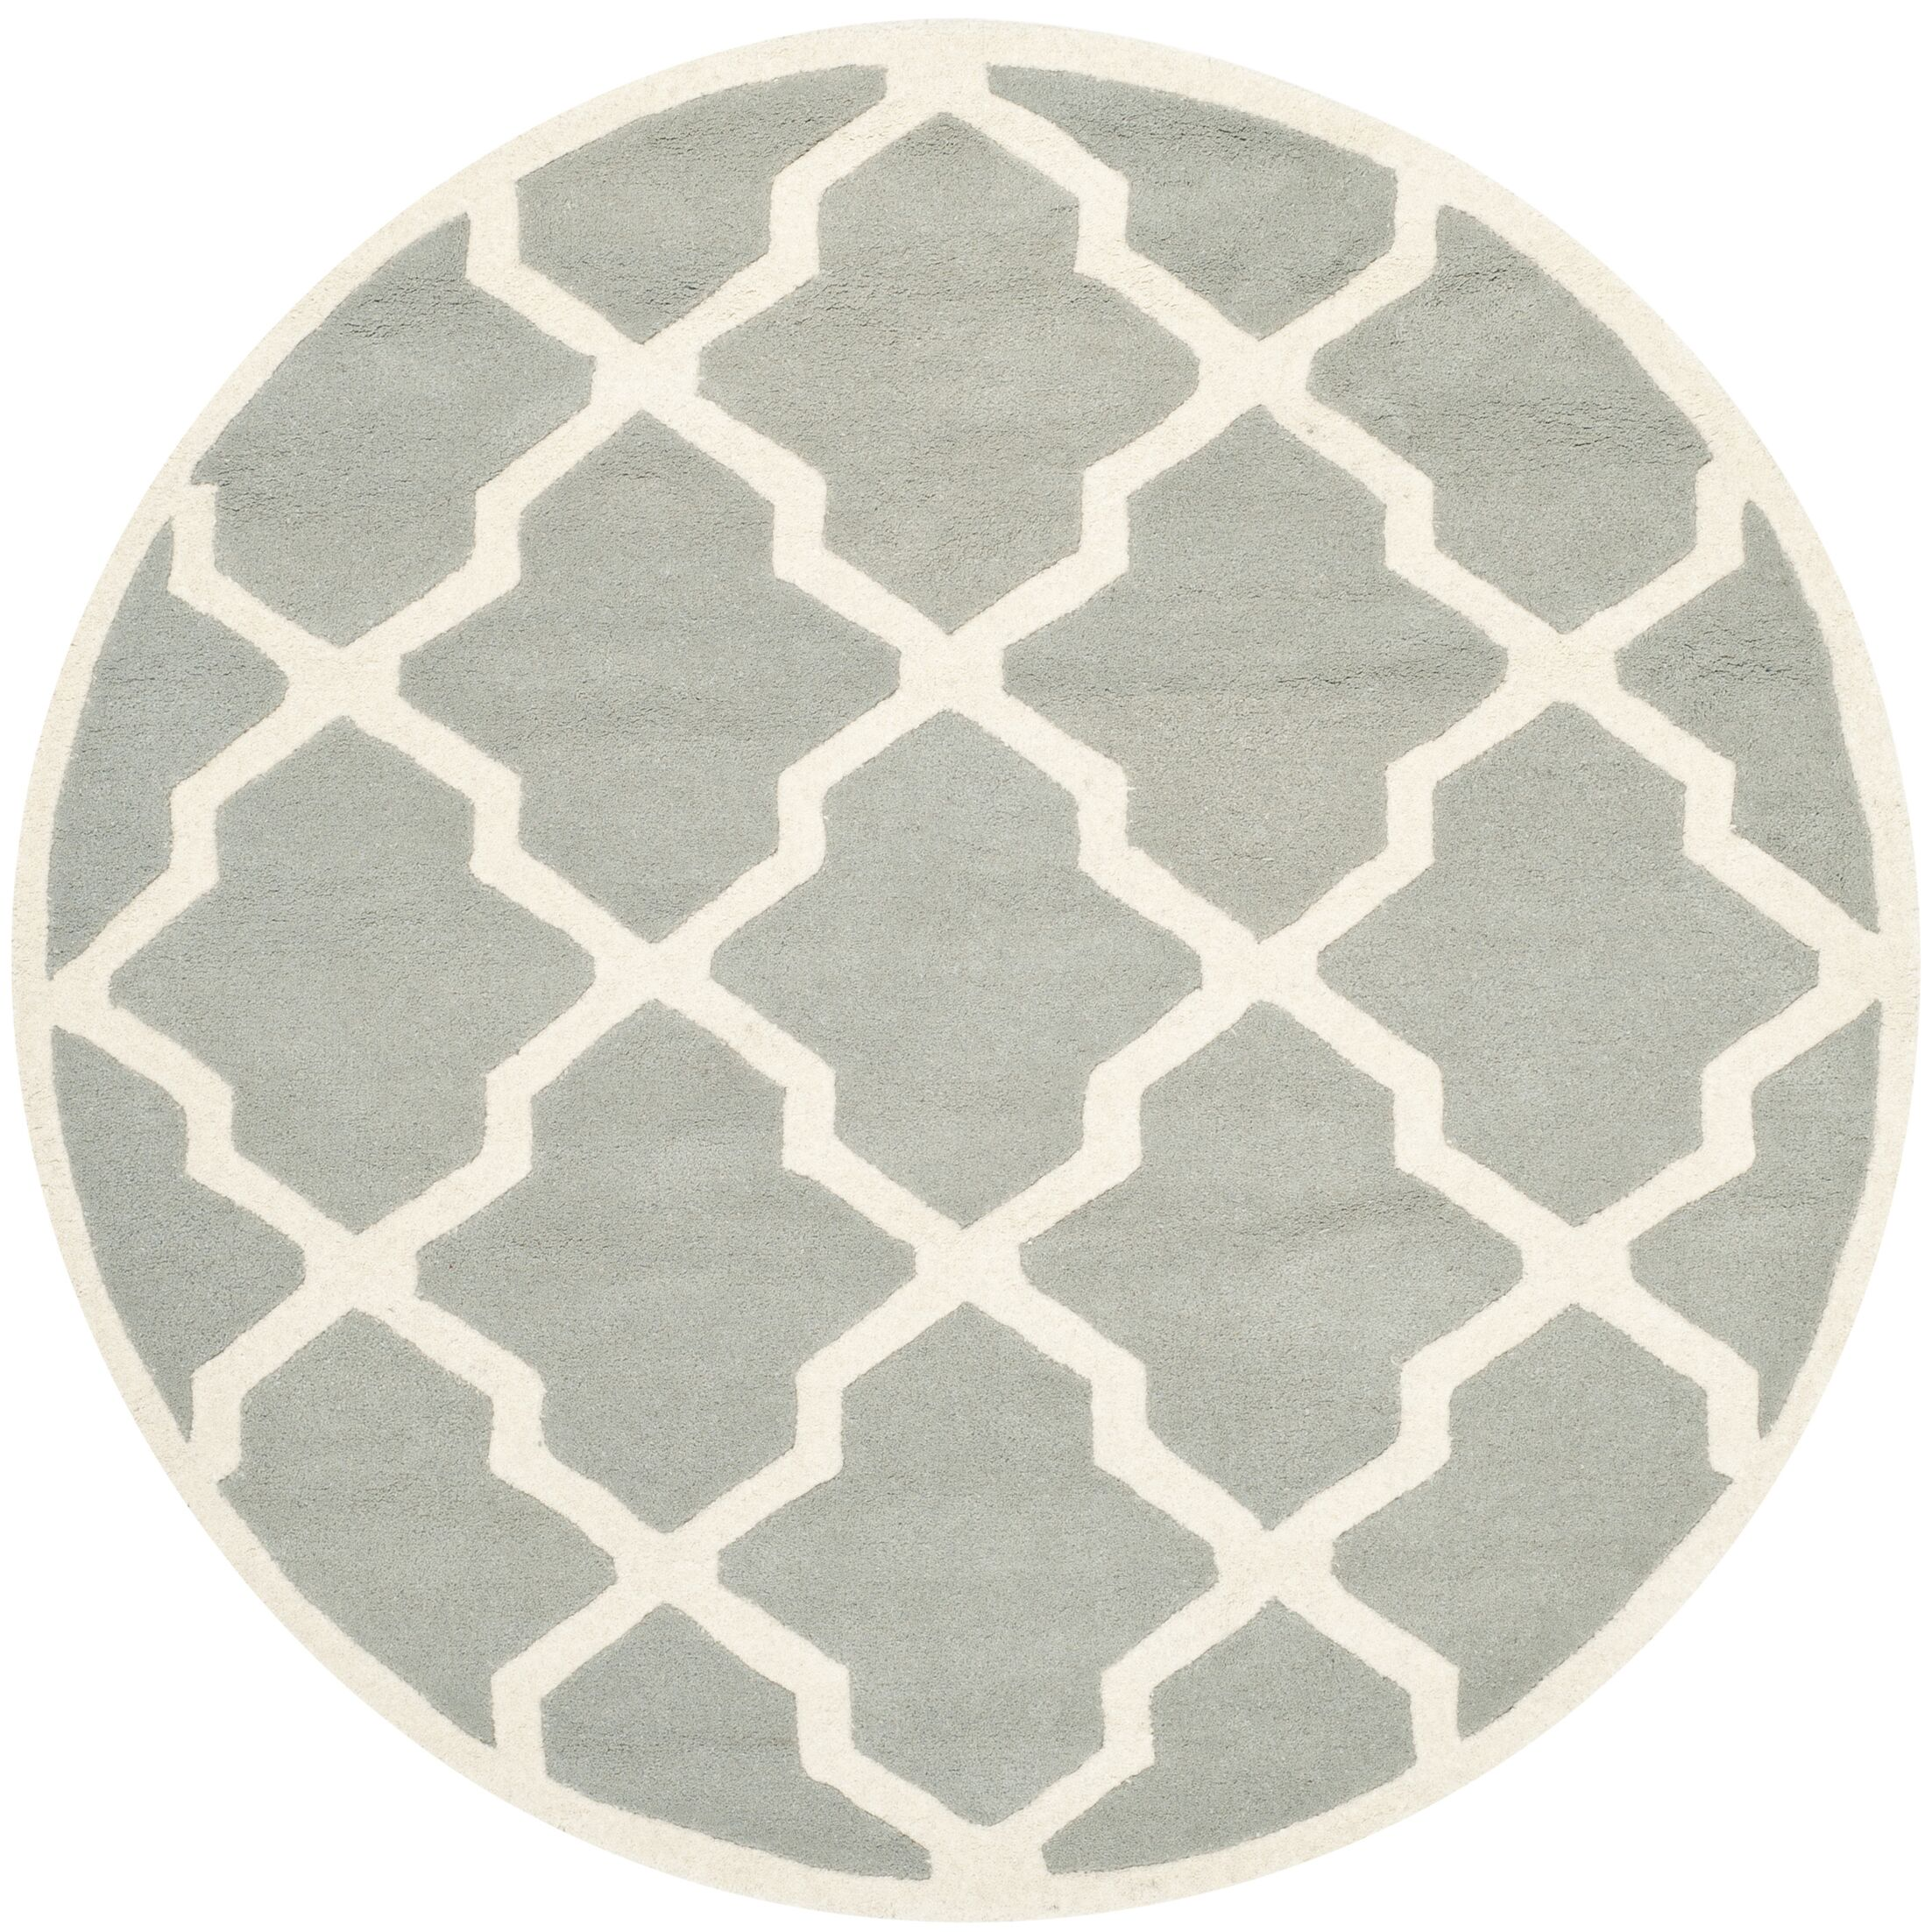 Wilkin Hand-Tufted Wool Gray/Ivory Area Rug Rug Size: Round 5'